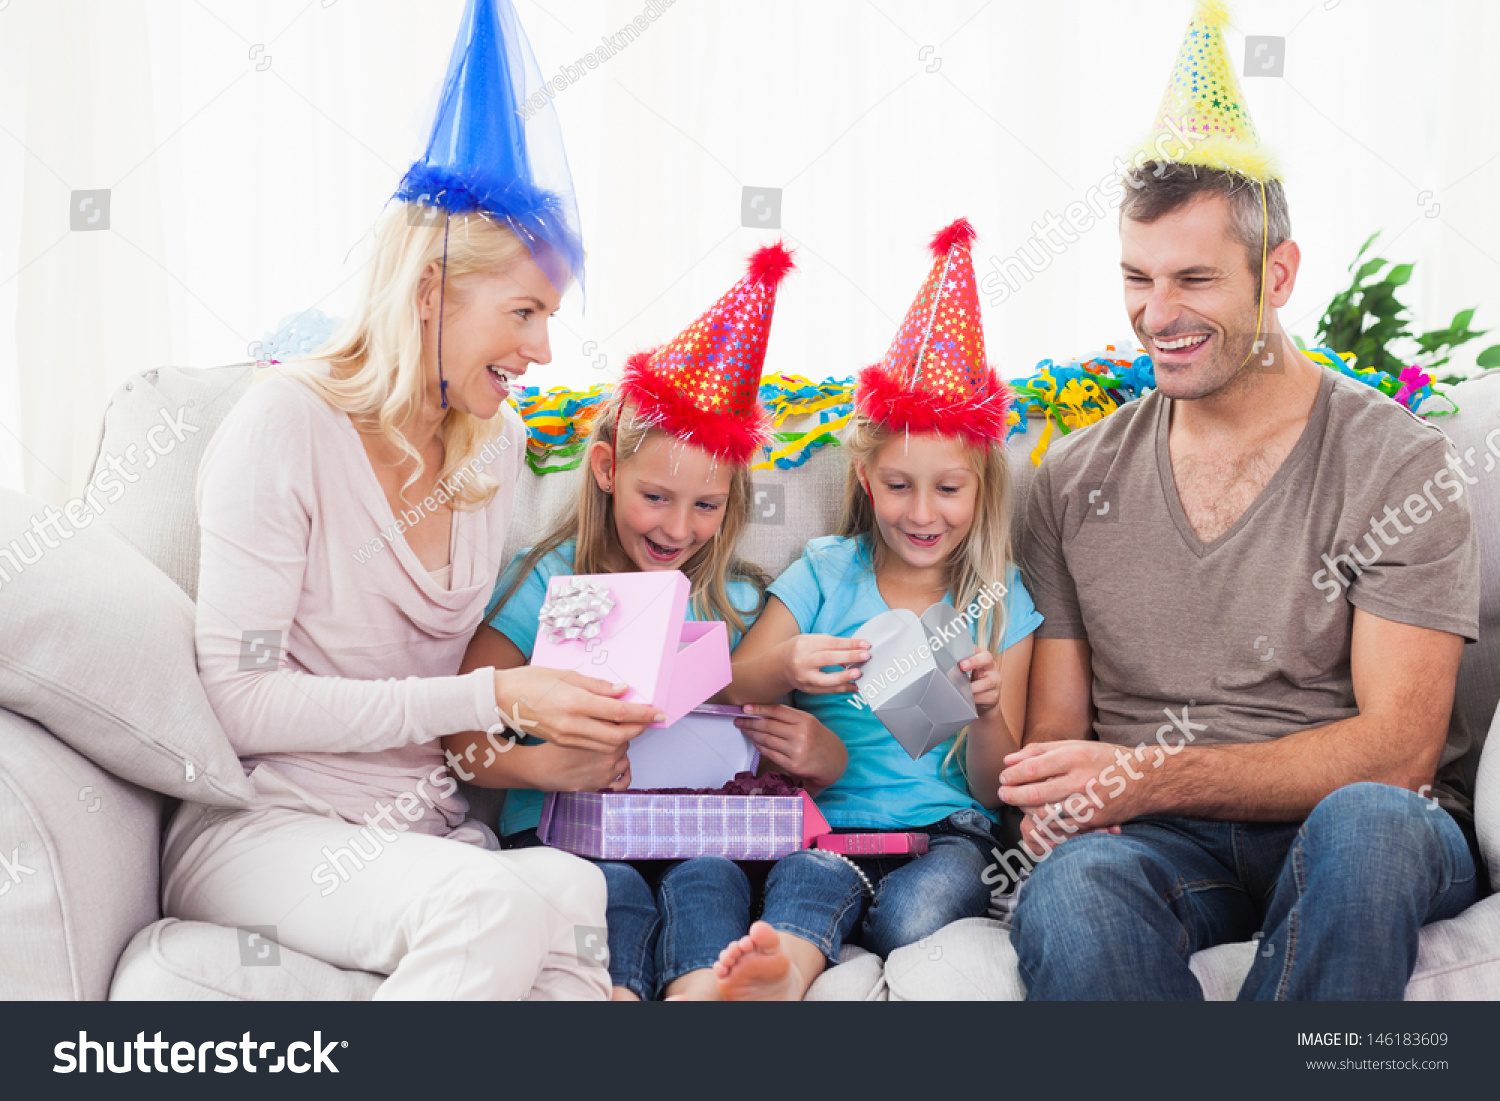 Twins Unwrapping Birthday Gift With Their Parents Sitting On A Couch